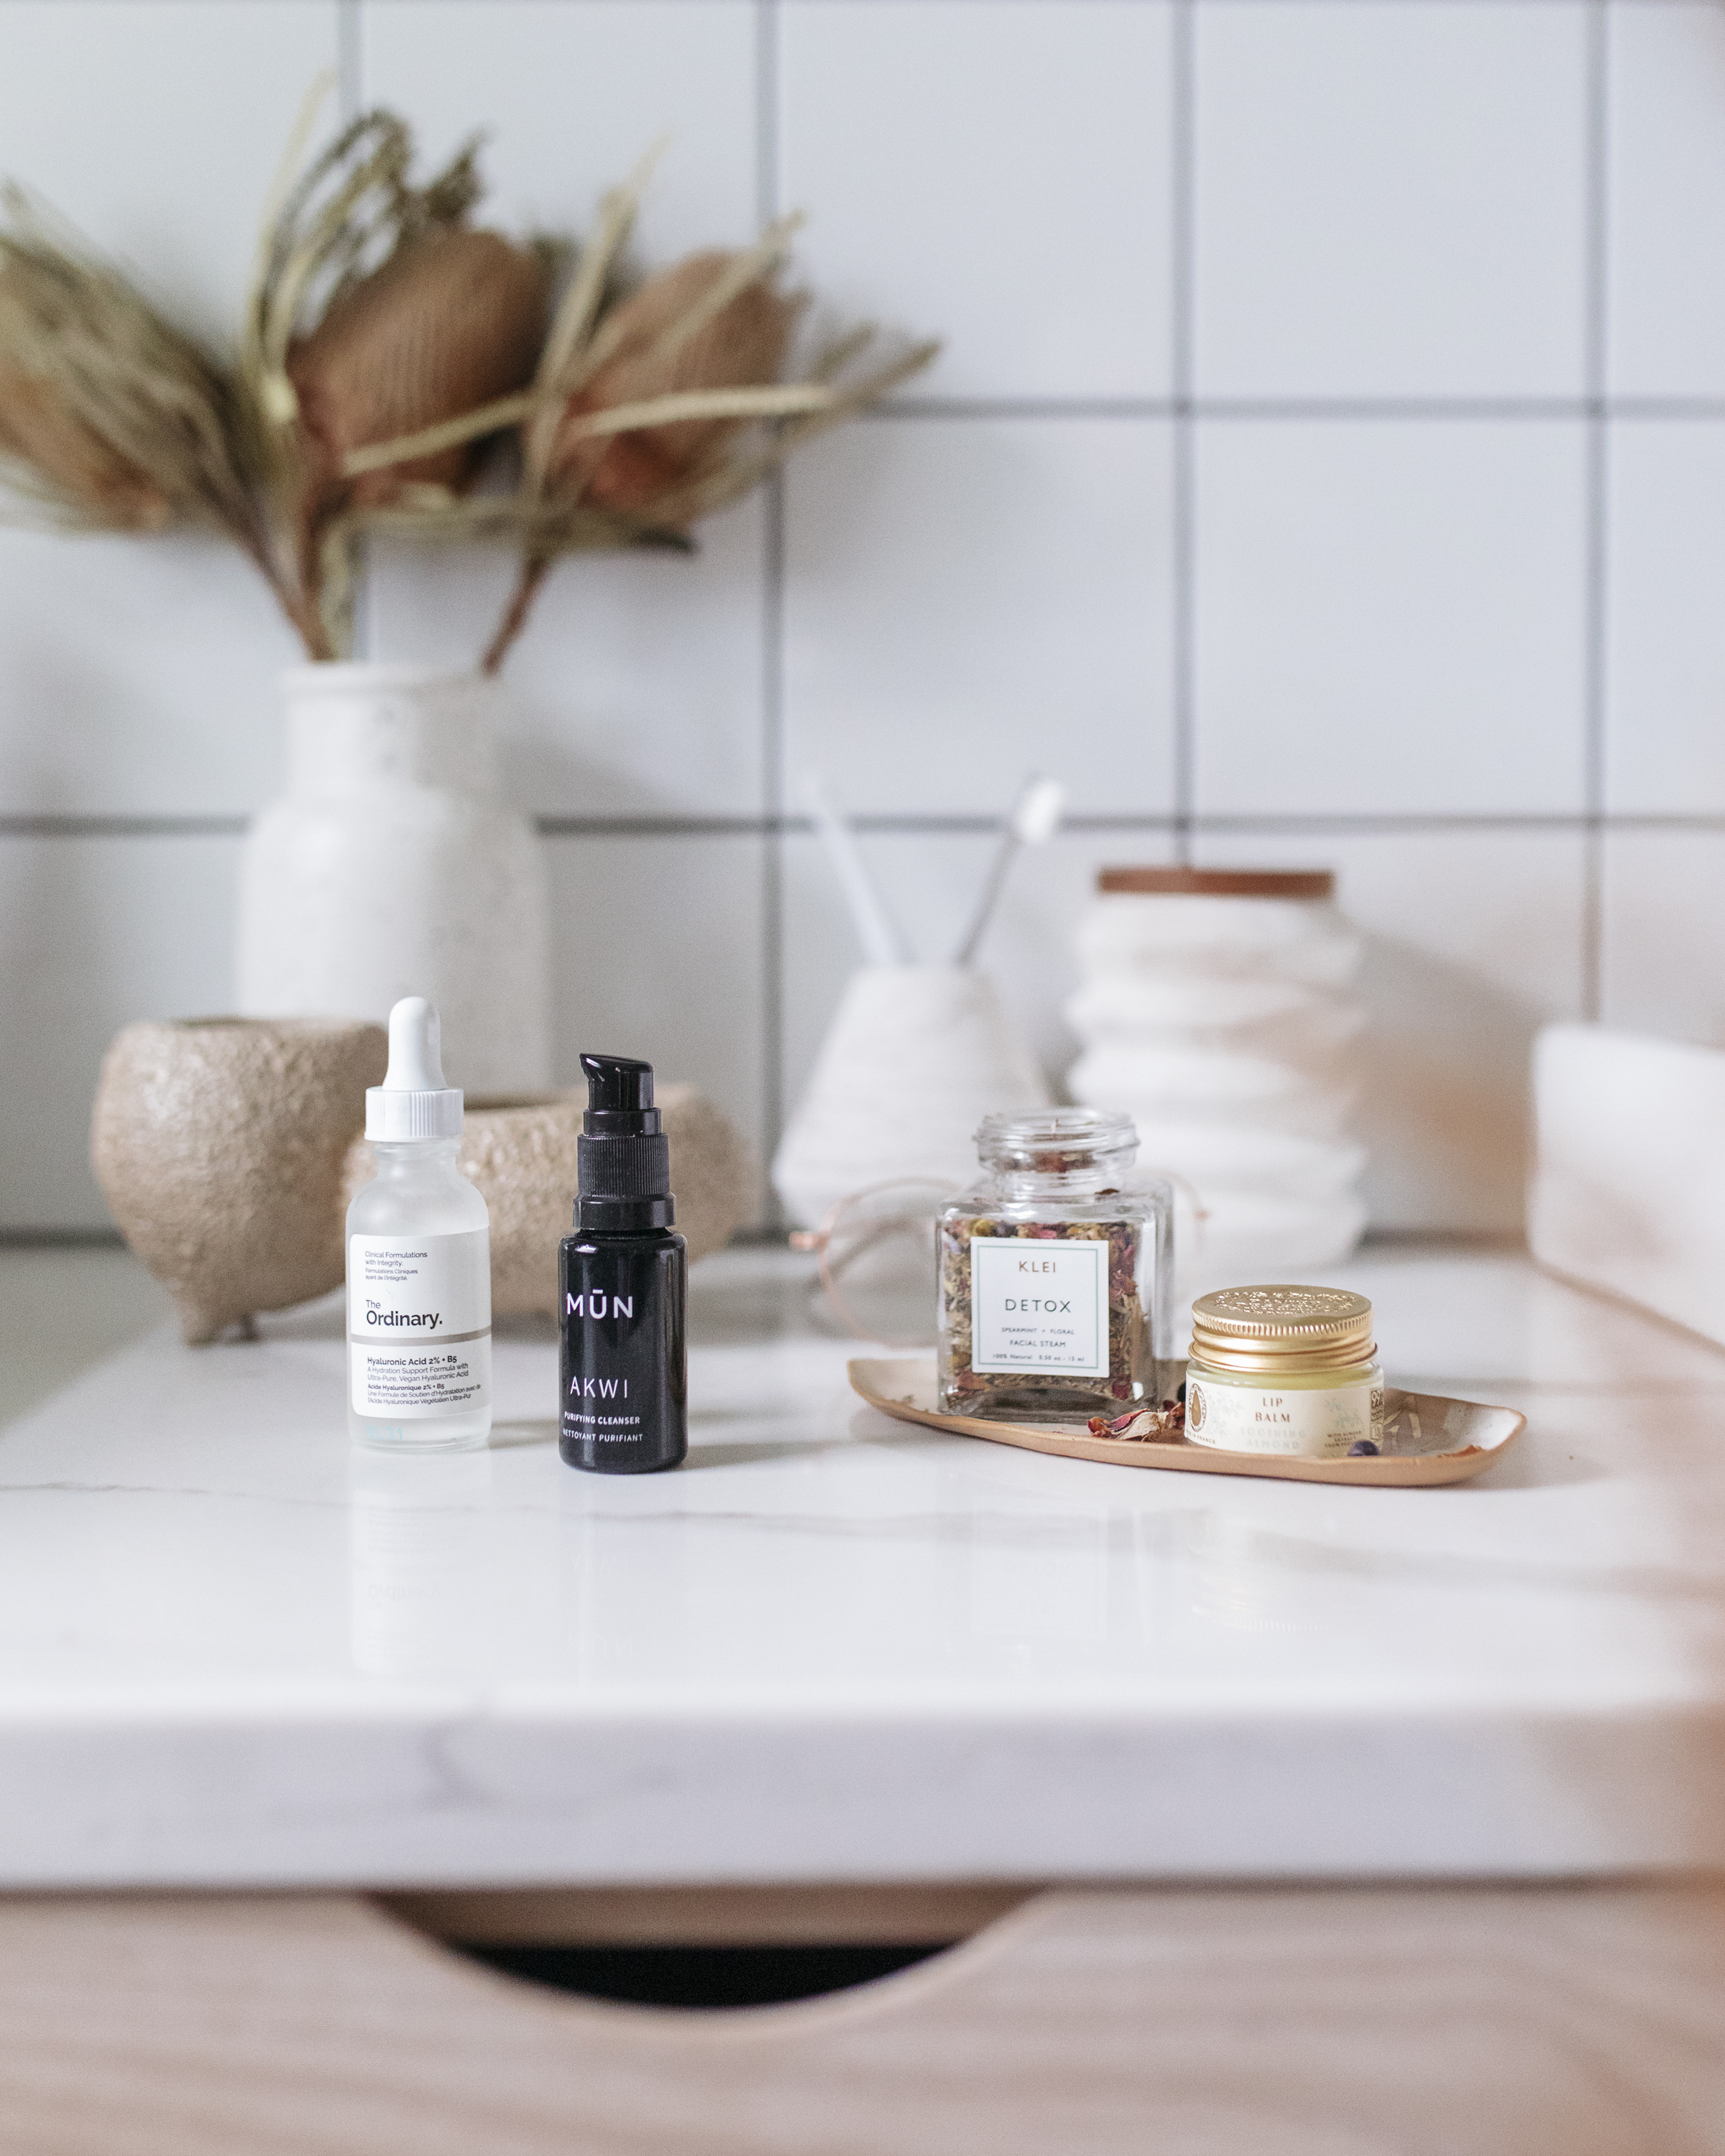 Here are some of the oils and products I use to hydrate and clean my face each night. Developing a nightly skin care routine is so important to nourish your skin, relax, and stay healthy